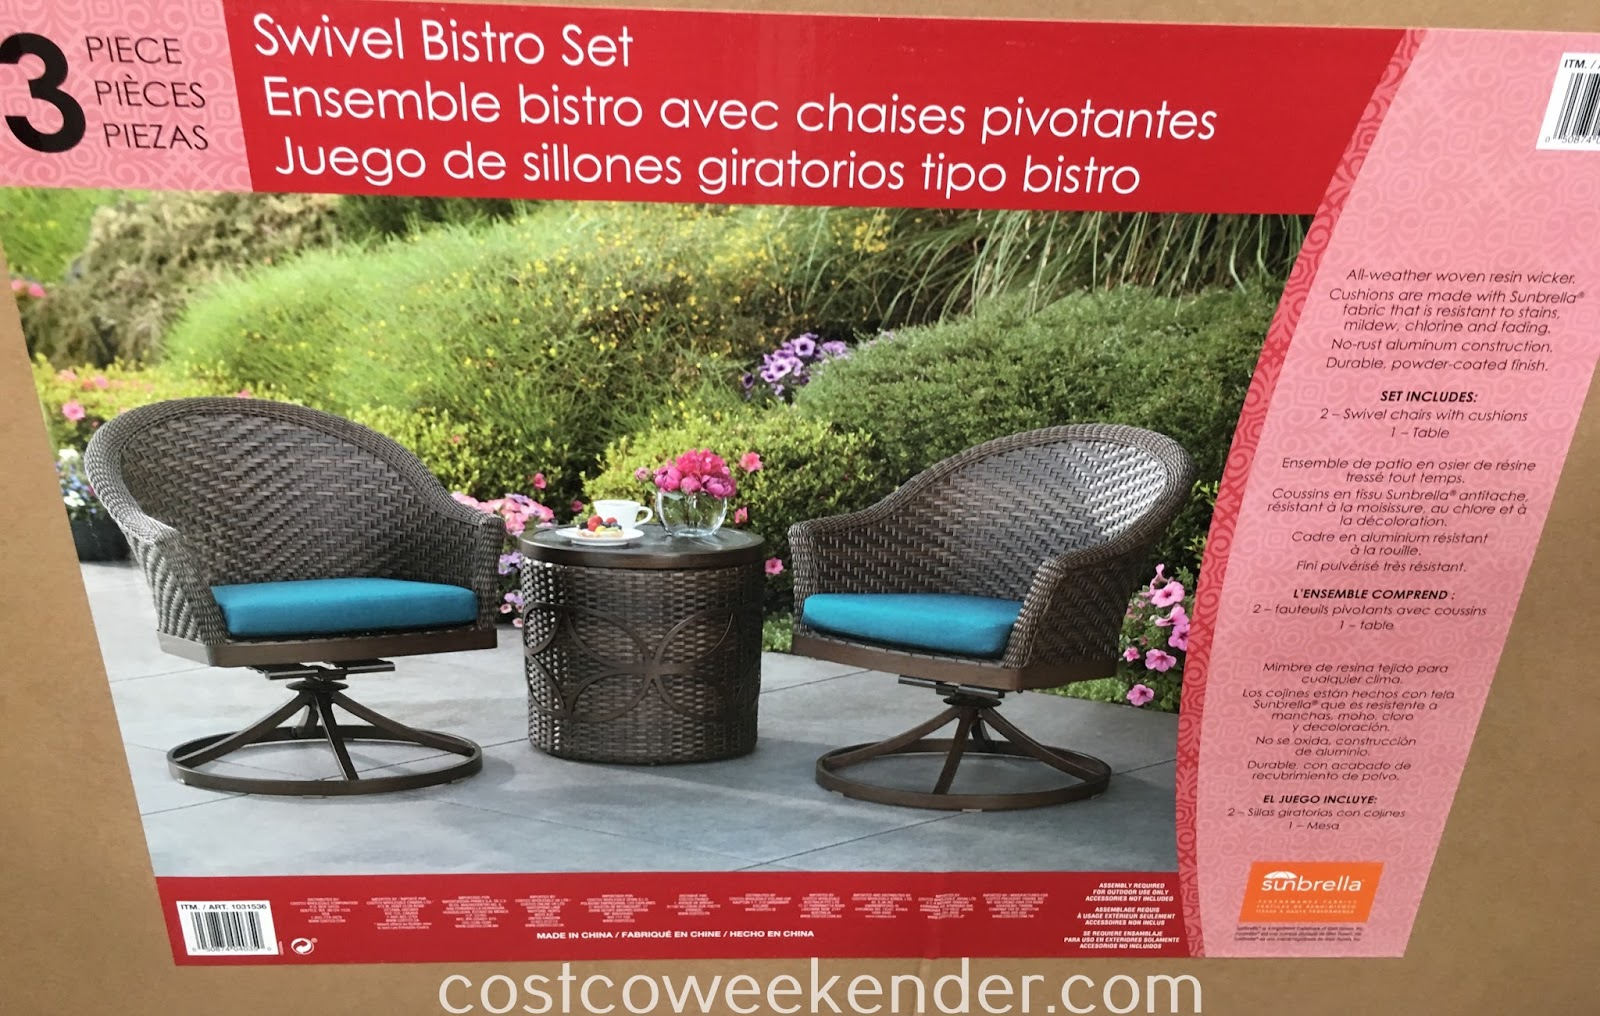 Costco 1031536 - Agio International 3-piece Swivel Bistro Set: great for any backyard or patio